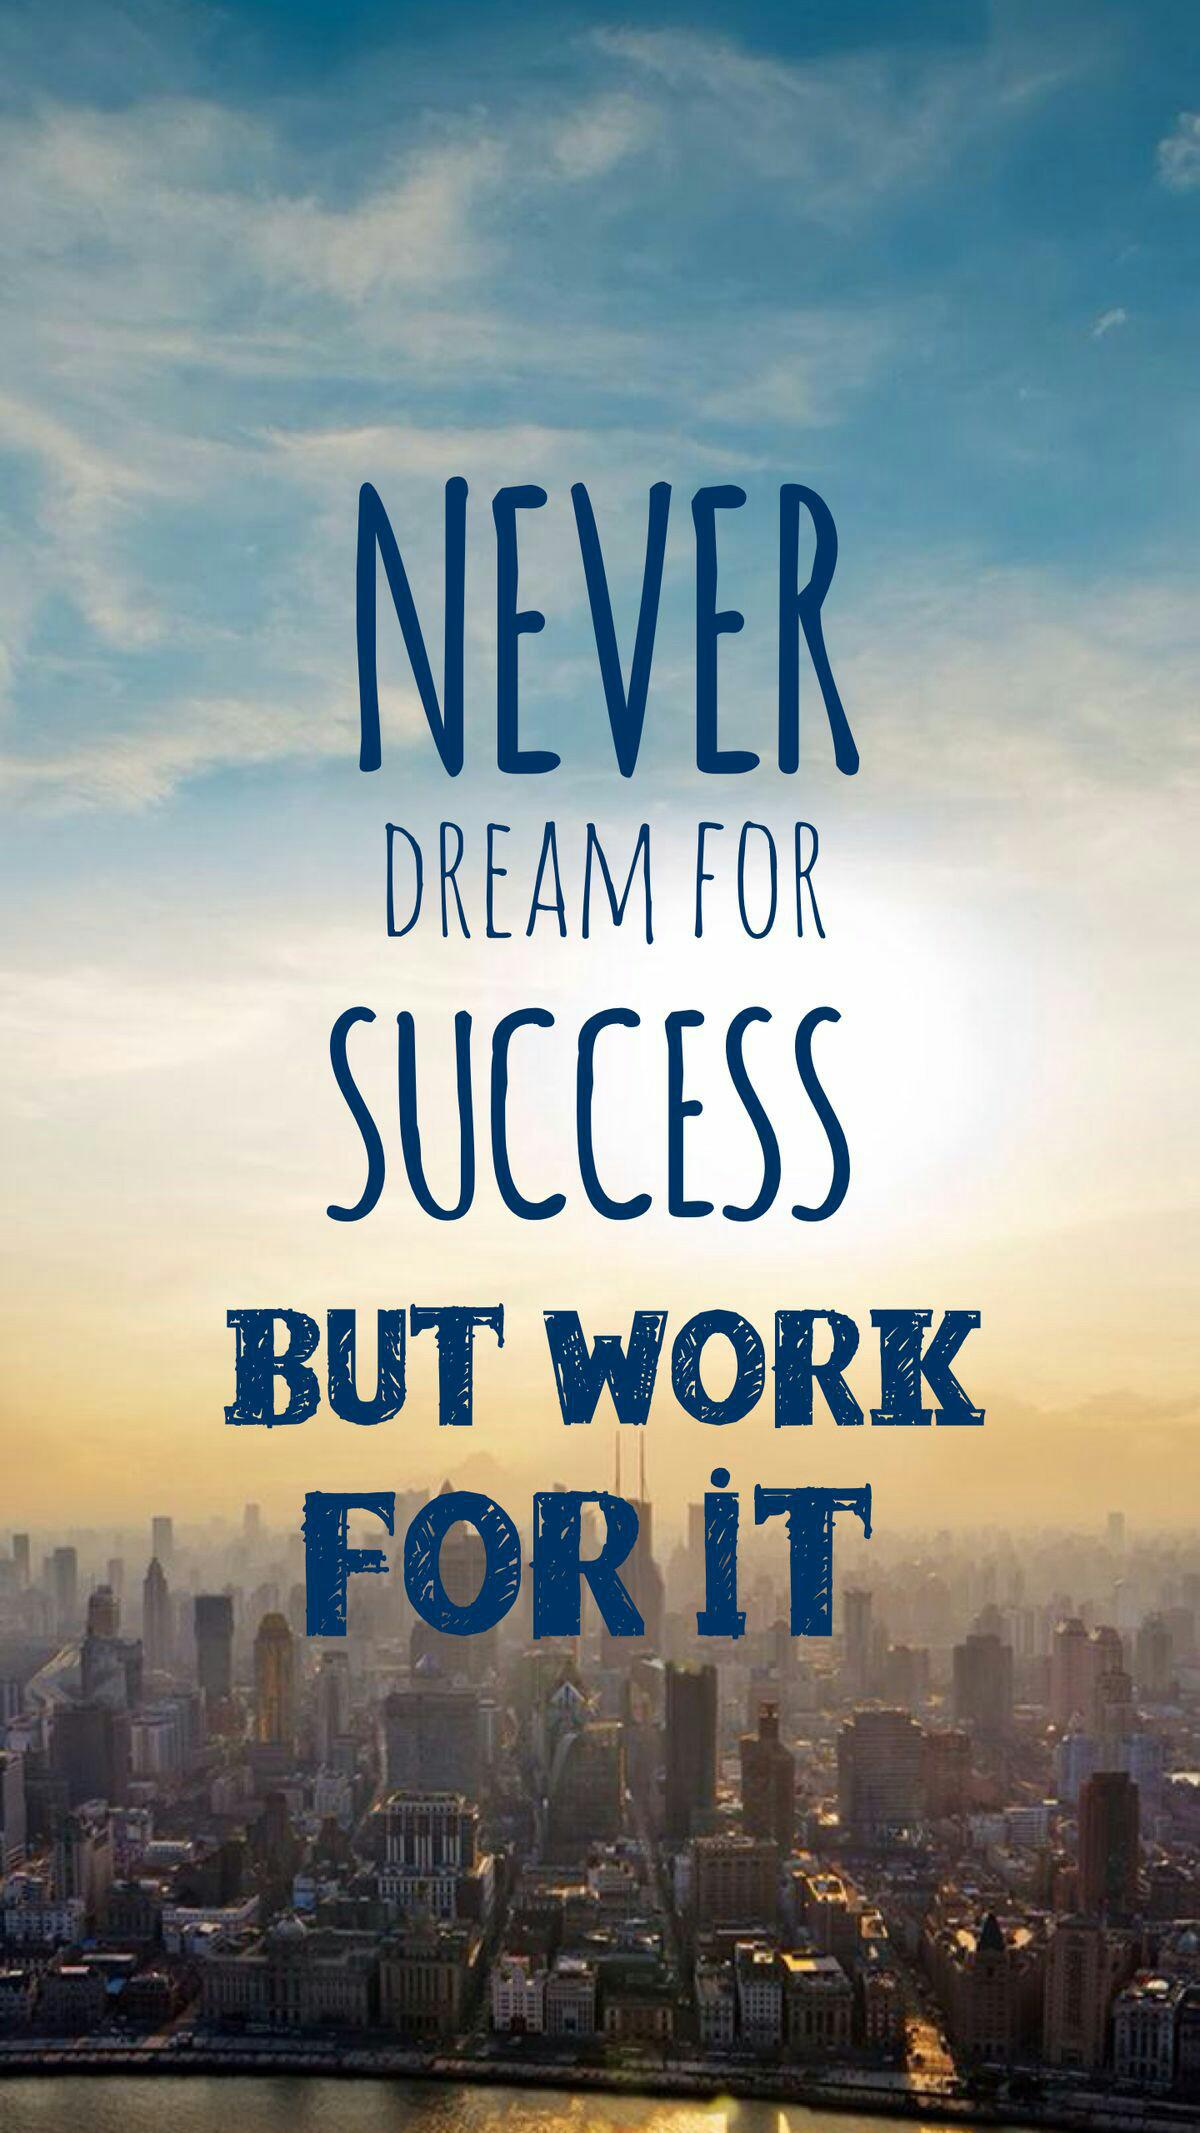 Inspiring Success Quotes for Android - APK Download